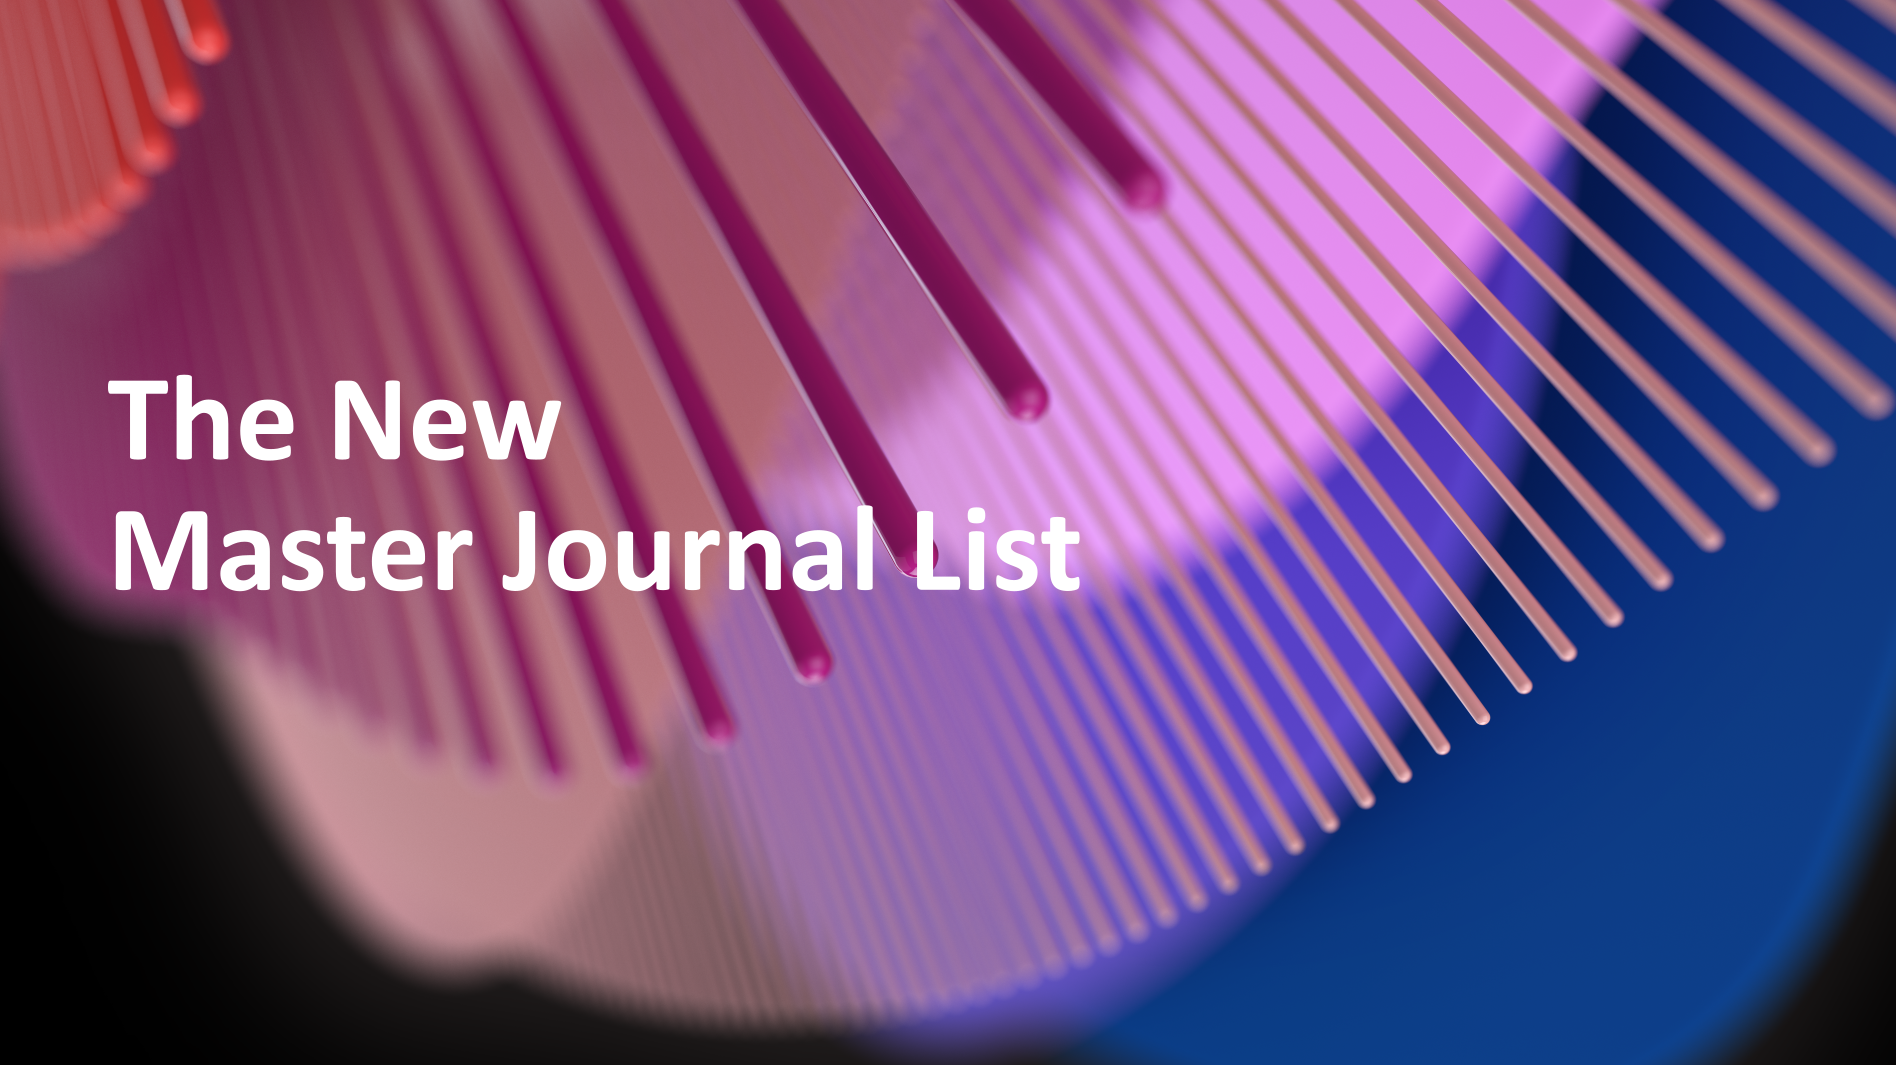 The New Master Journal List